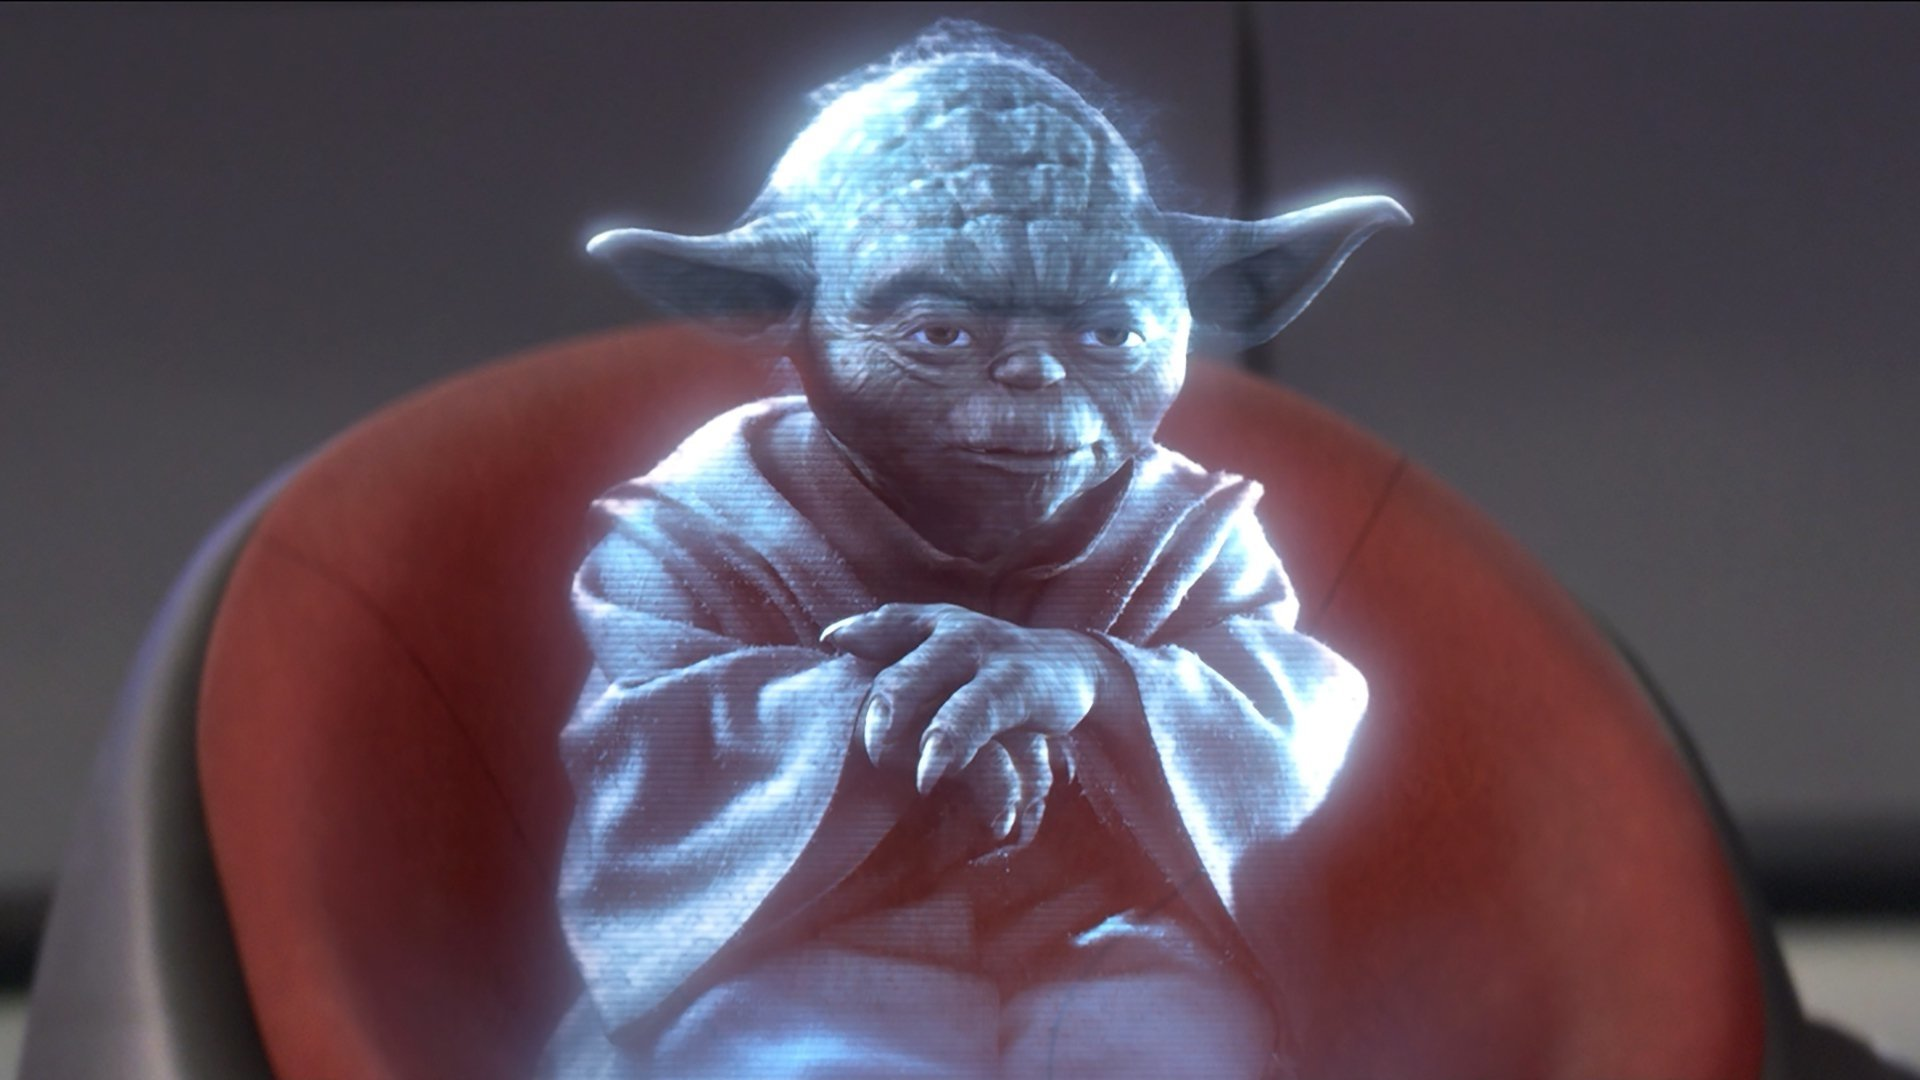 Movie - Star Wars Episode III: Revenge of the Sith  Yoda Hologram Wallpaper